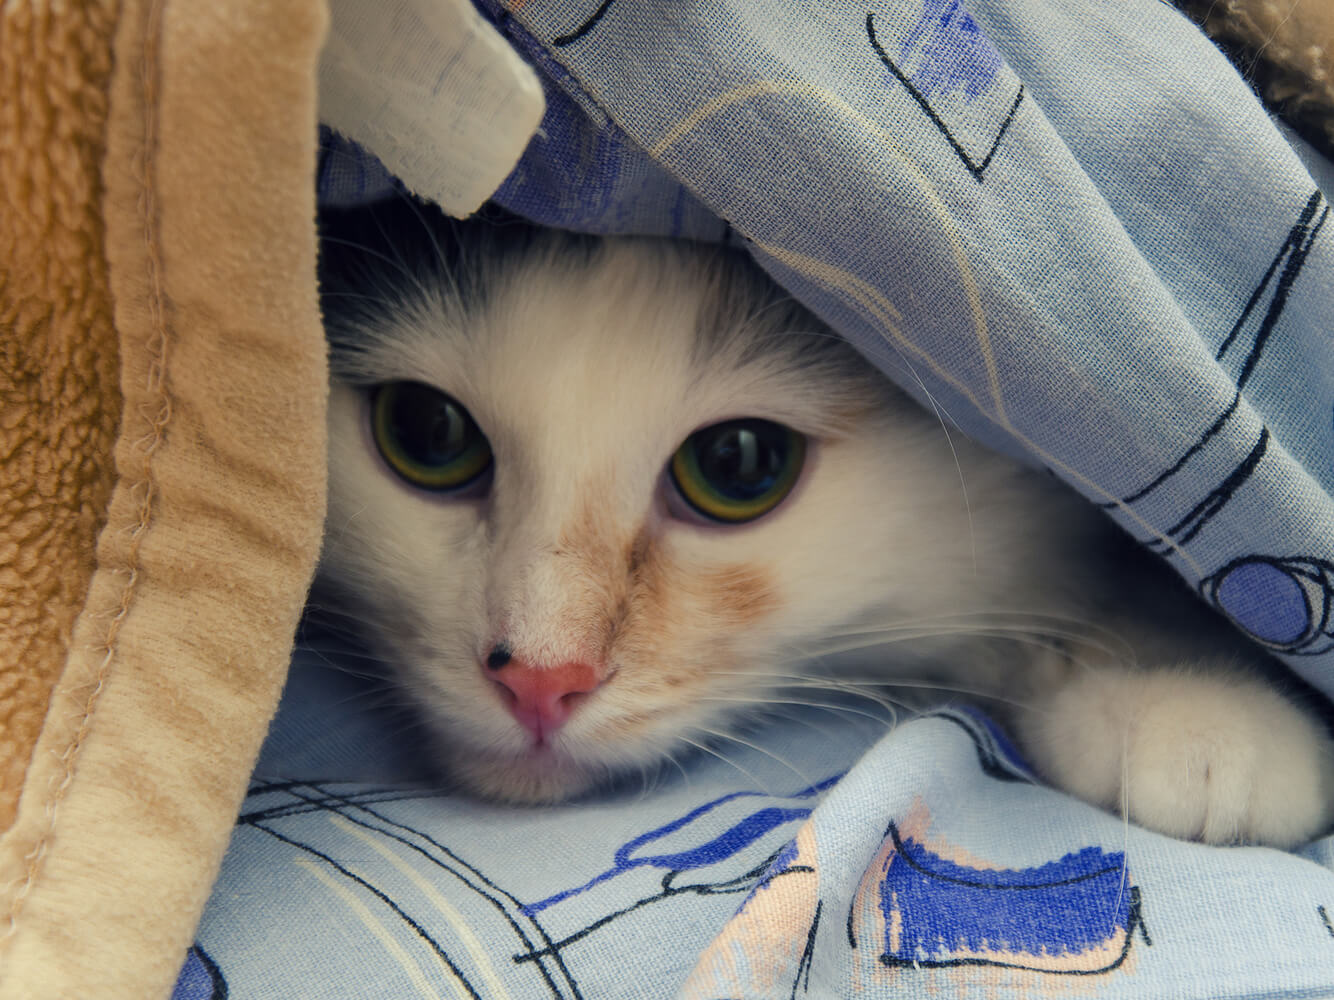 Cat peeking out from a pile of blankets